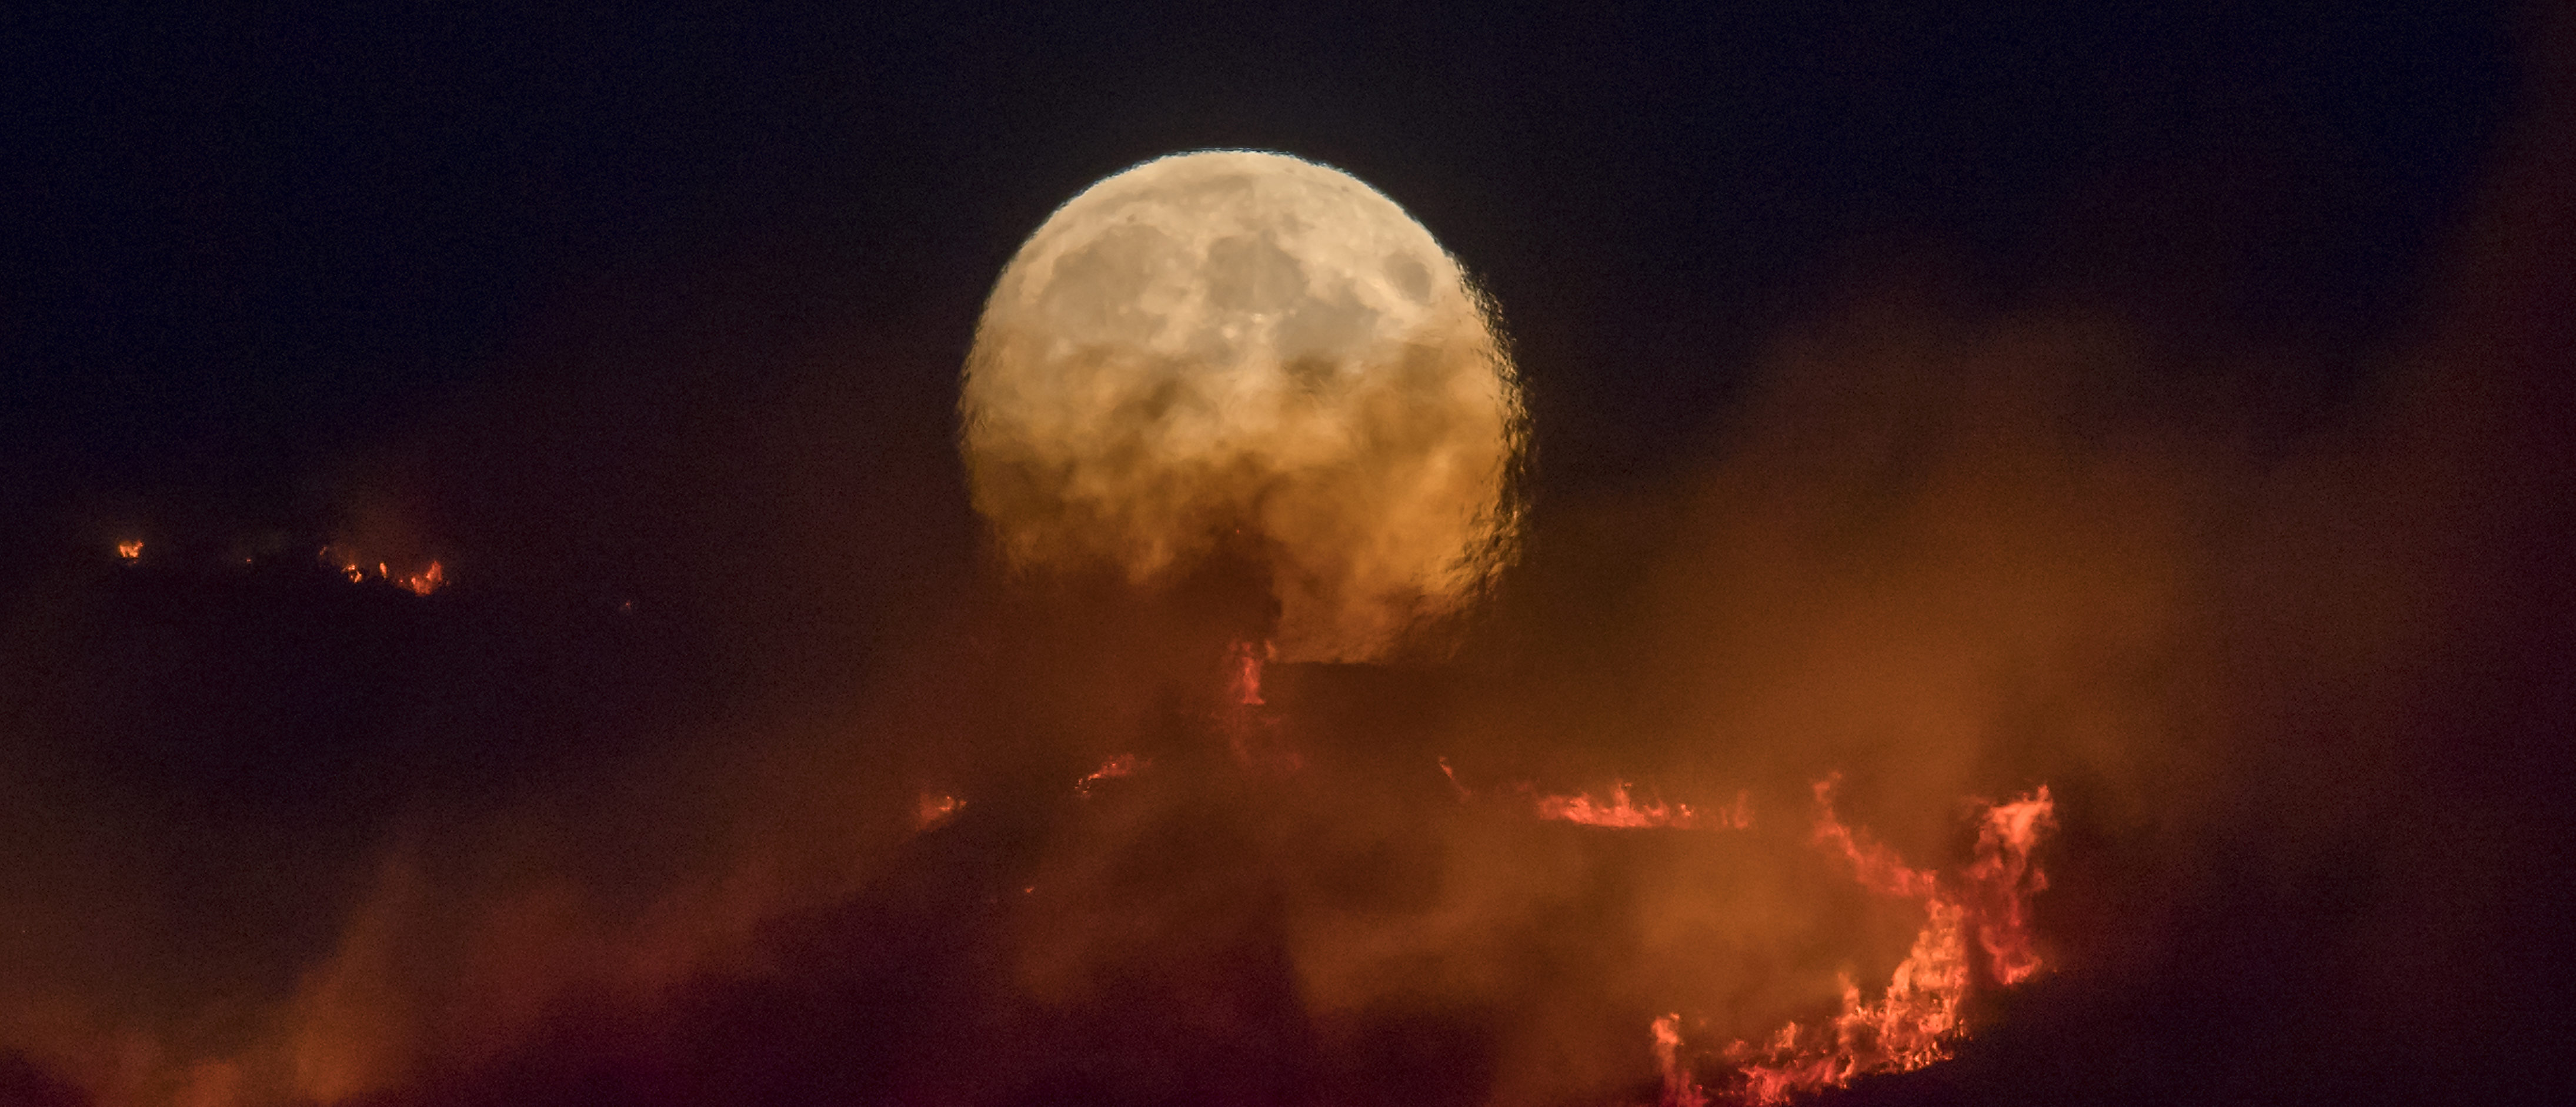 The full moon rises behind burning moorland as a large wildfire sweeps across the moors between Dovestones and Buckton Vale in Stalybridge, Greater Manchester on June 26, 2018 in Stalybridge, England. (Photo by Anthony Devlin/Getty Images)